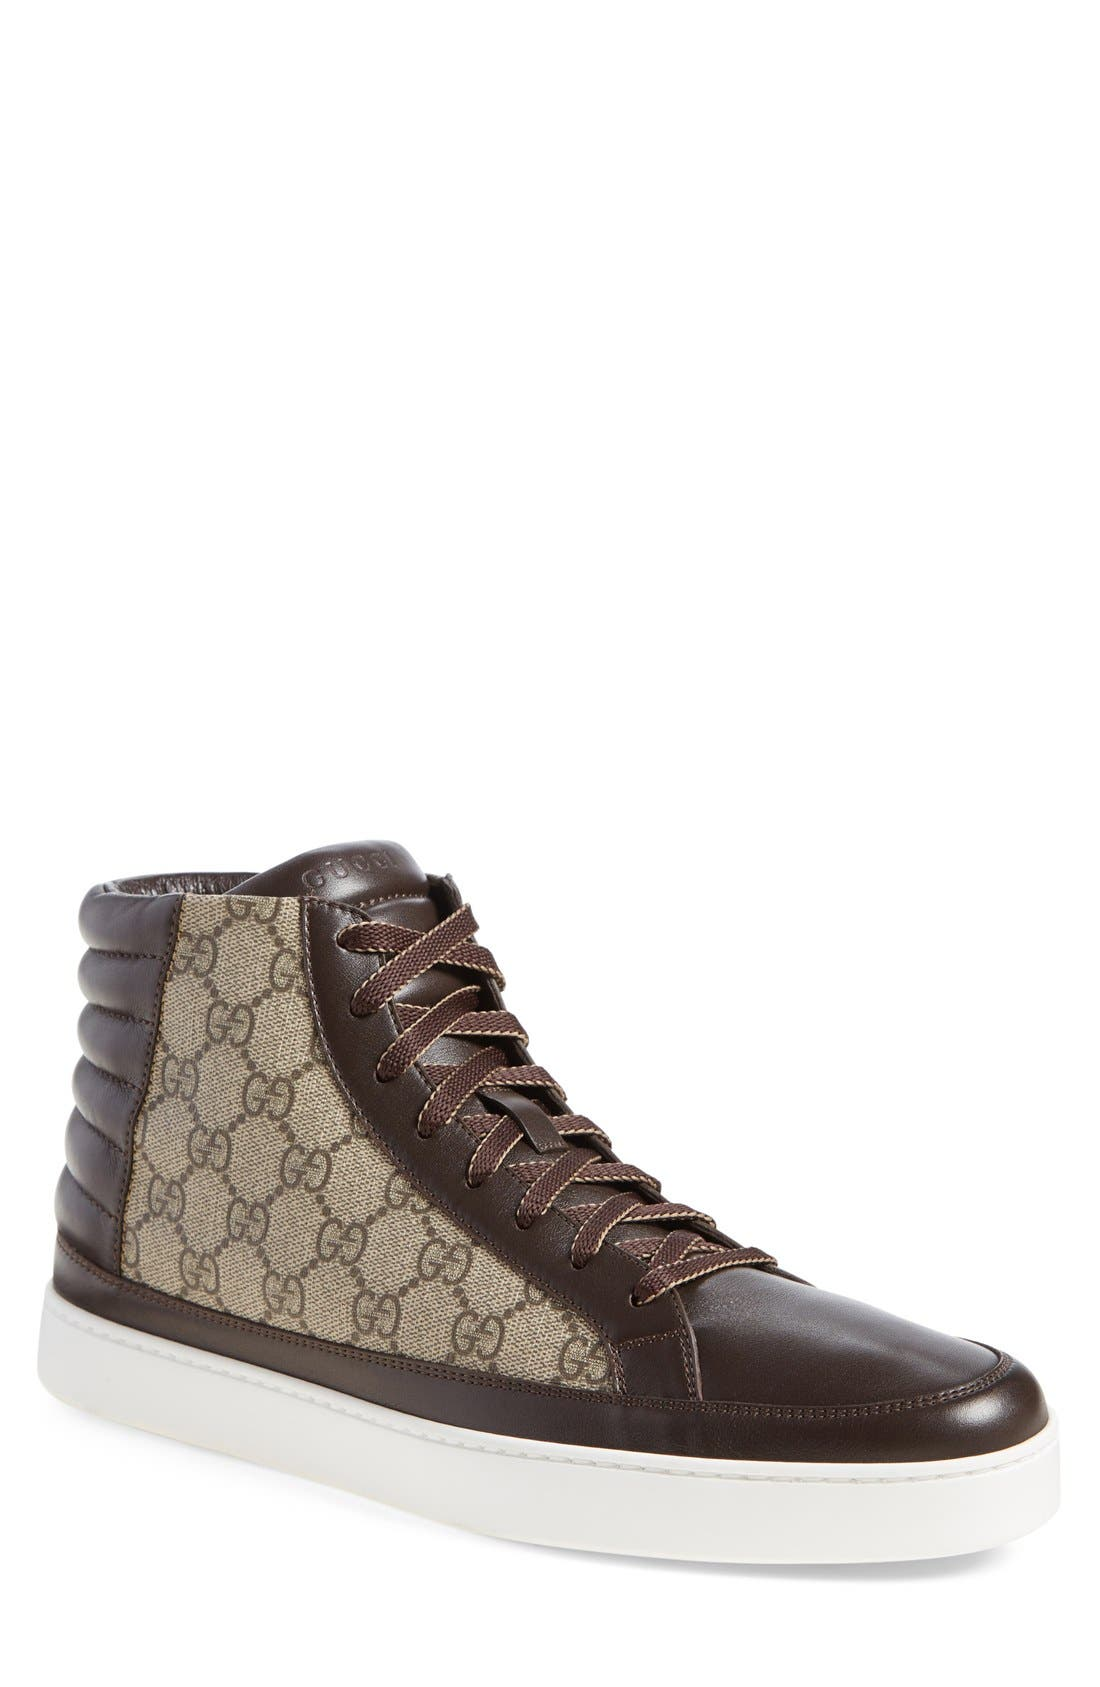 Main Image - Gucci 'Common' High Top Sneaker (Men)